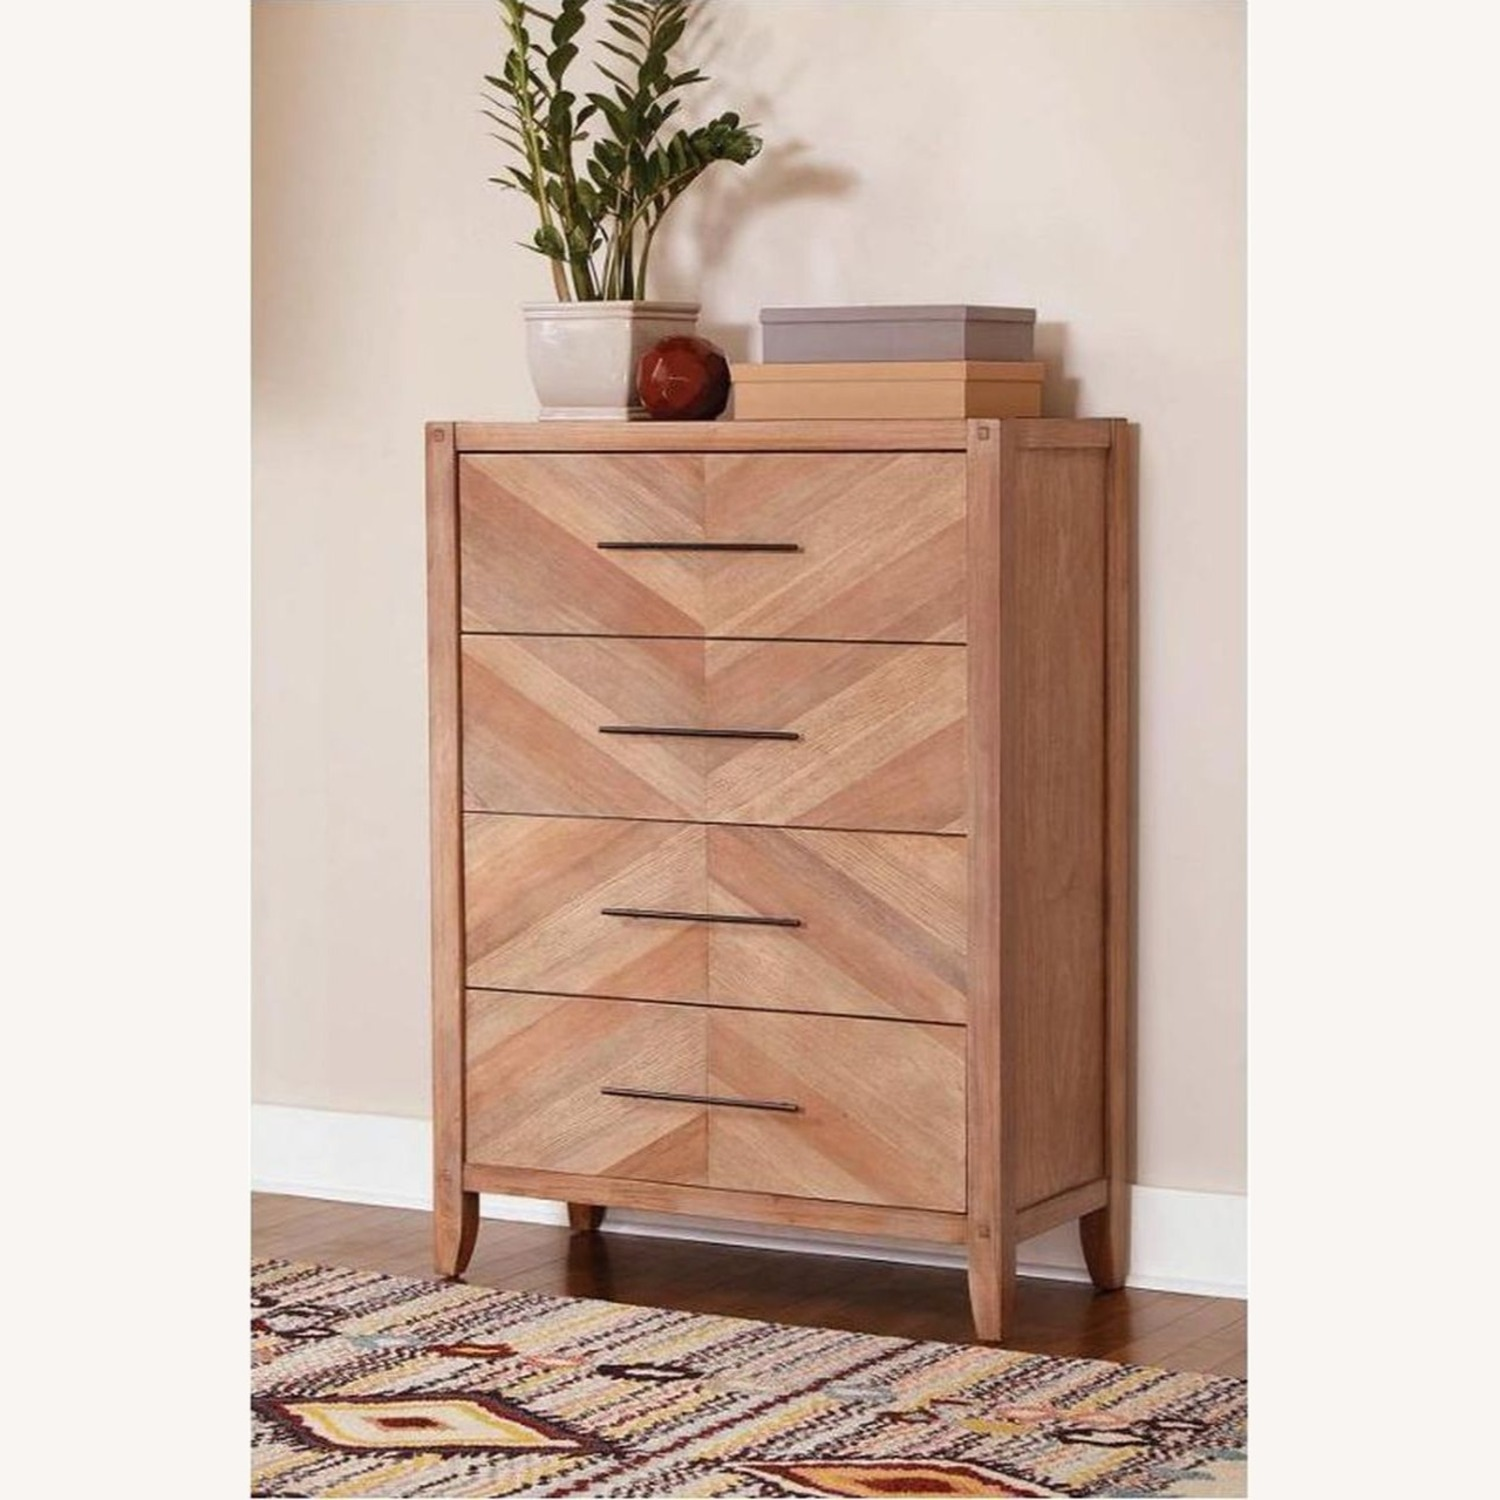 Modern Chest In Natural White Washed Finish - image-3